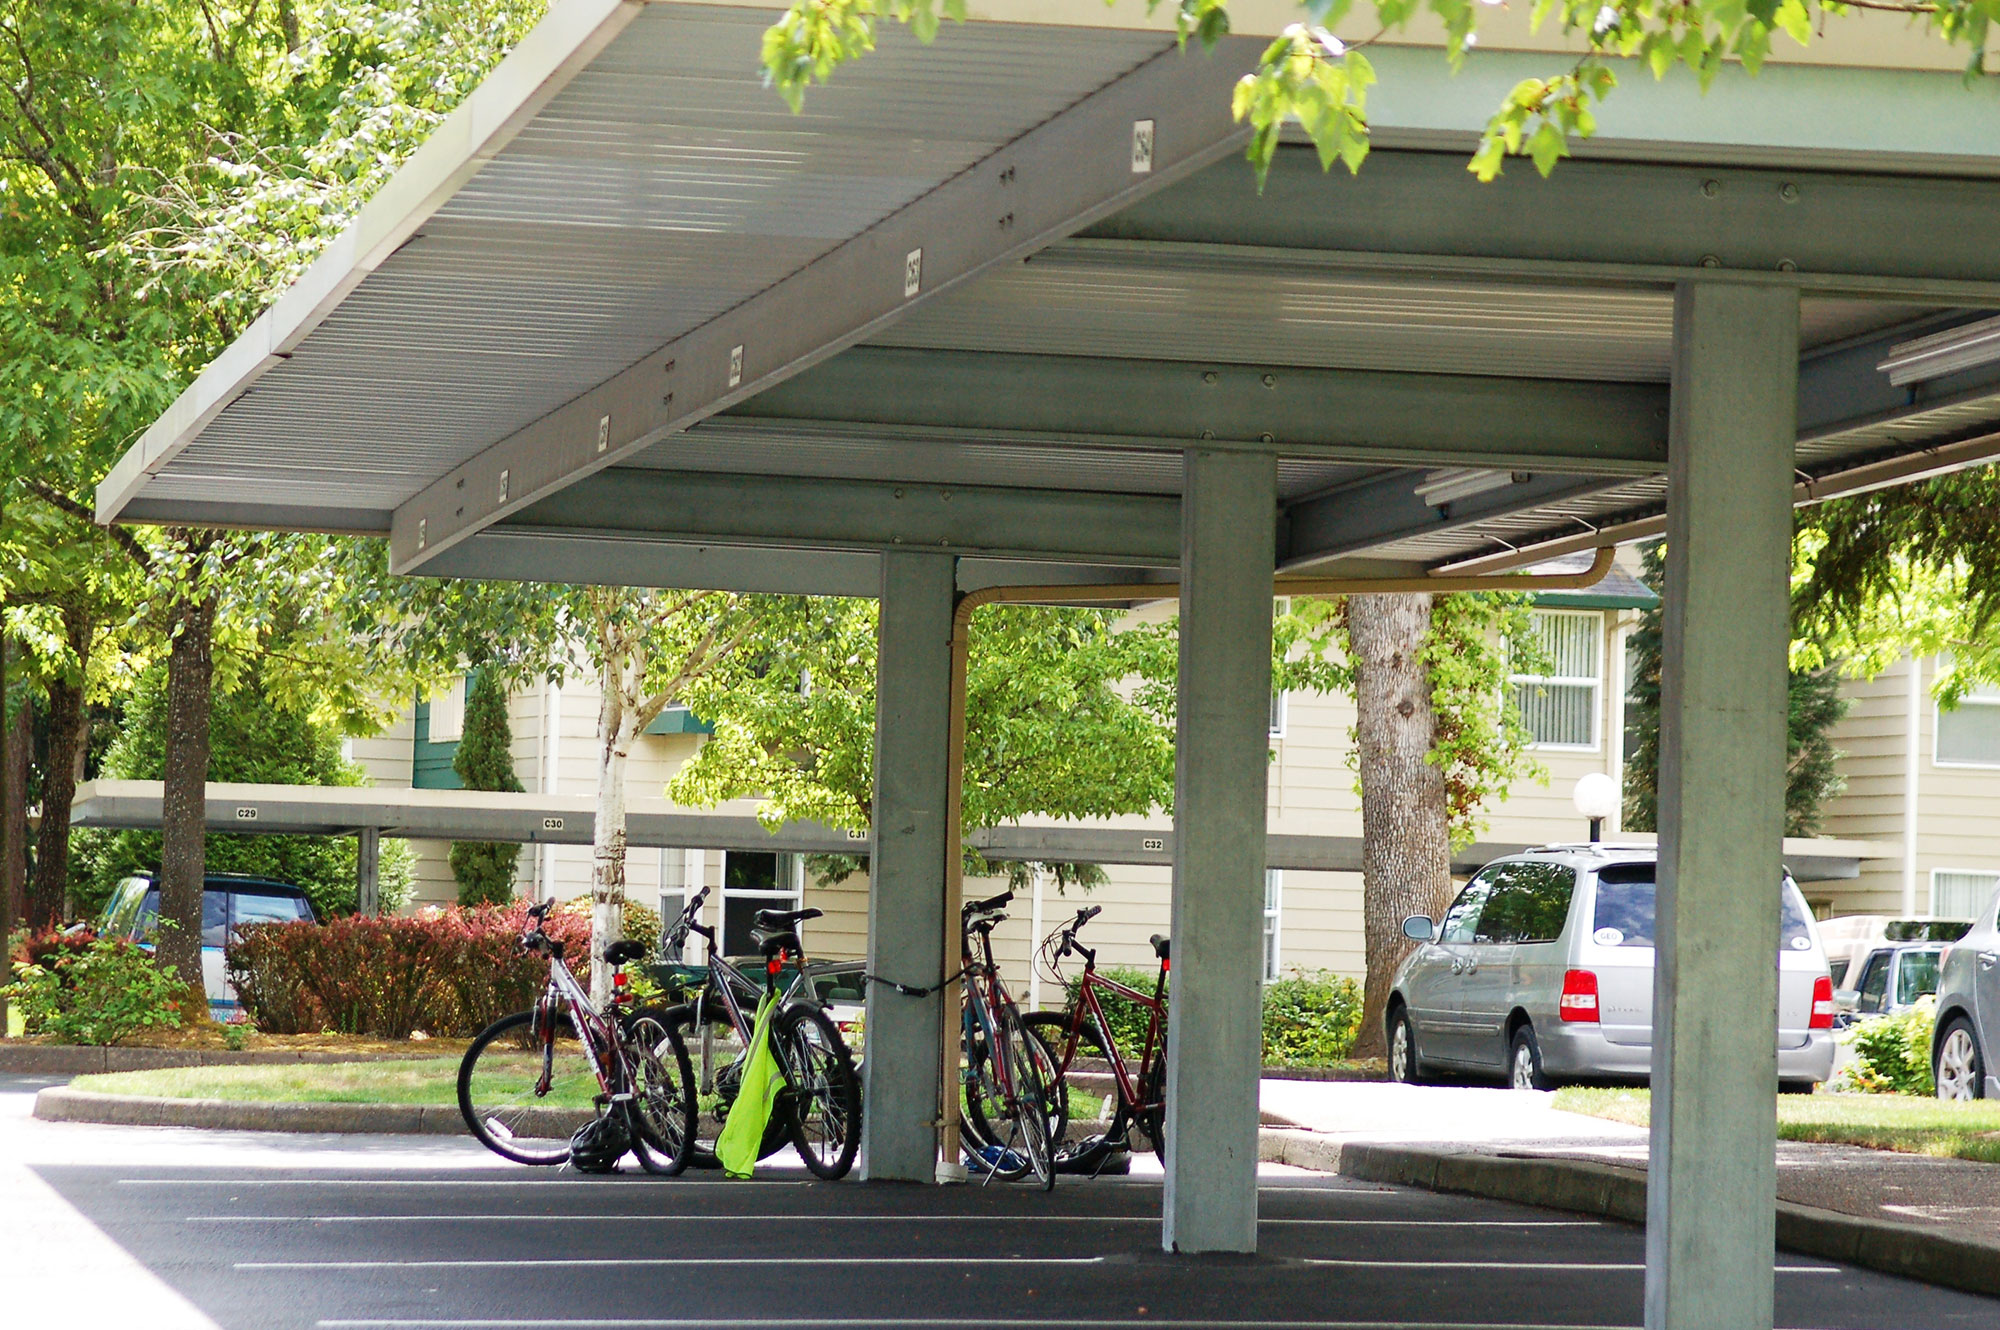 Bicycle covers steelport llc for Rv covered parking structures